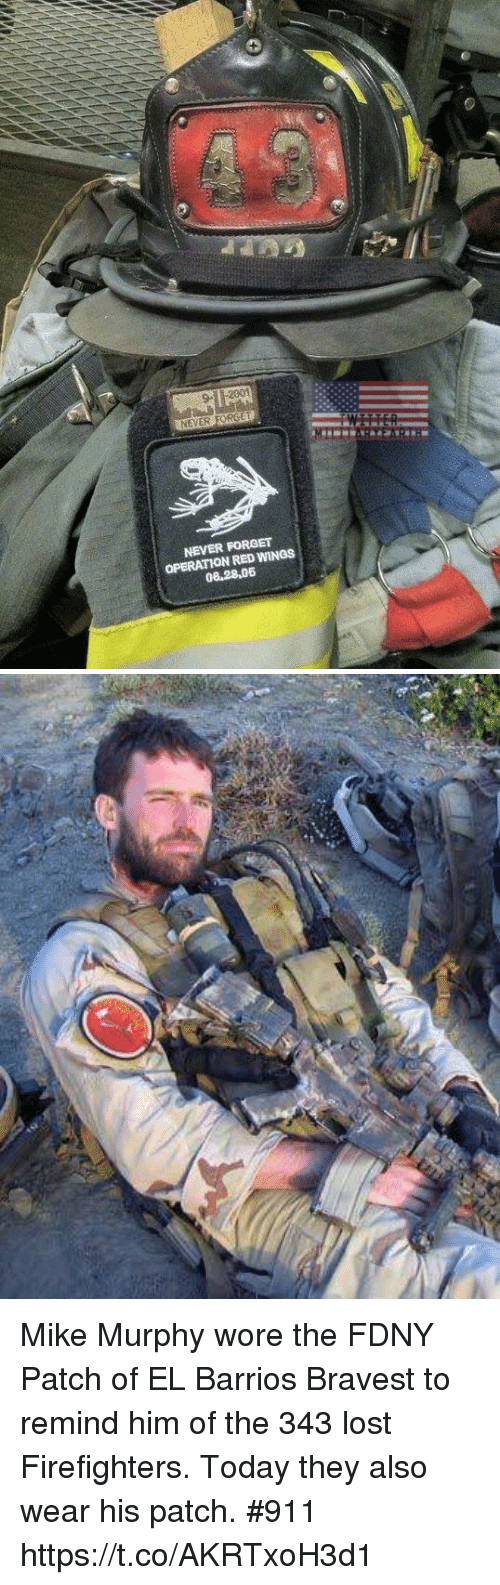 Memes, Lost, and Red Wings: NEVER FORGET  OPERATION RED WINGS Mike Murphy wore the FDNY Patch of EL Barrios Bravest to remind him of the 343 lost Firefighters. Today they also wear his patch. #911 https://t.co/AKRTxoH3d1